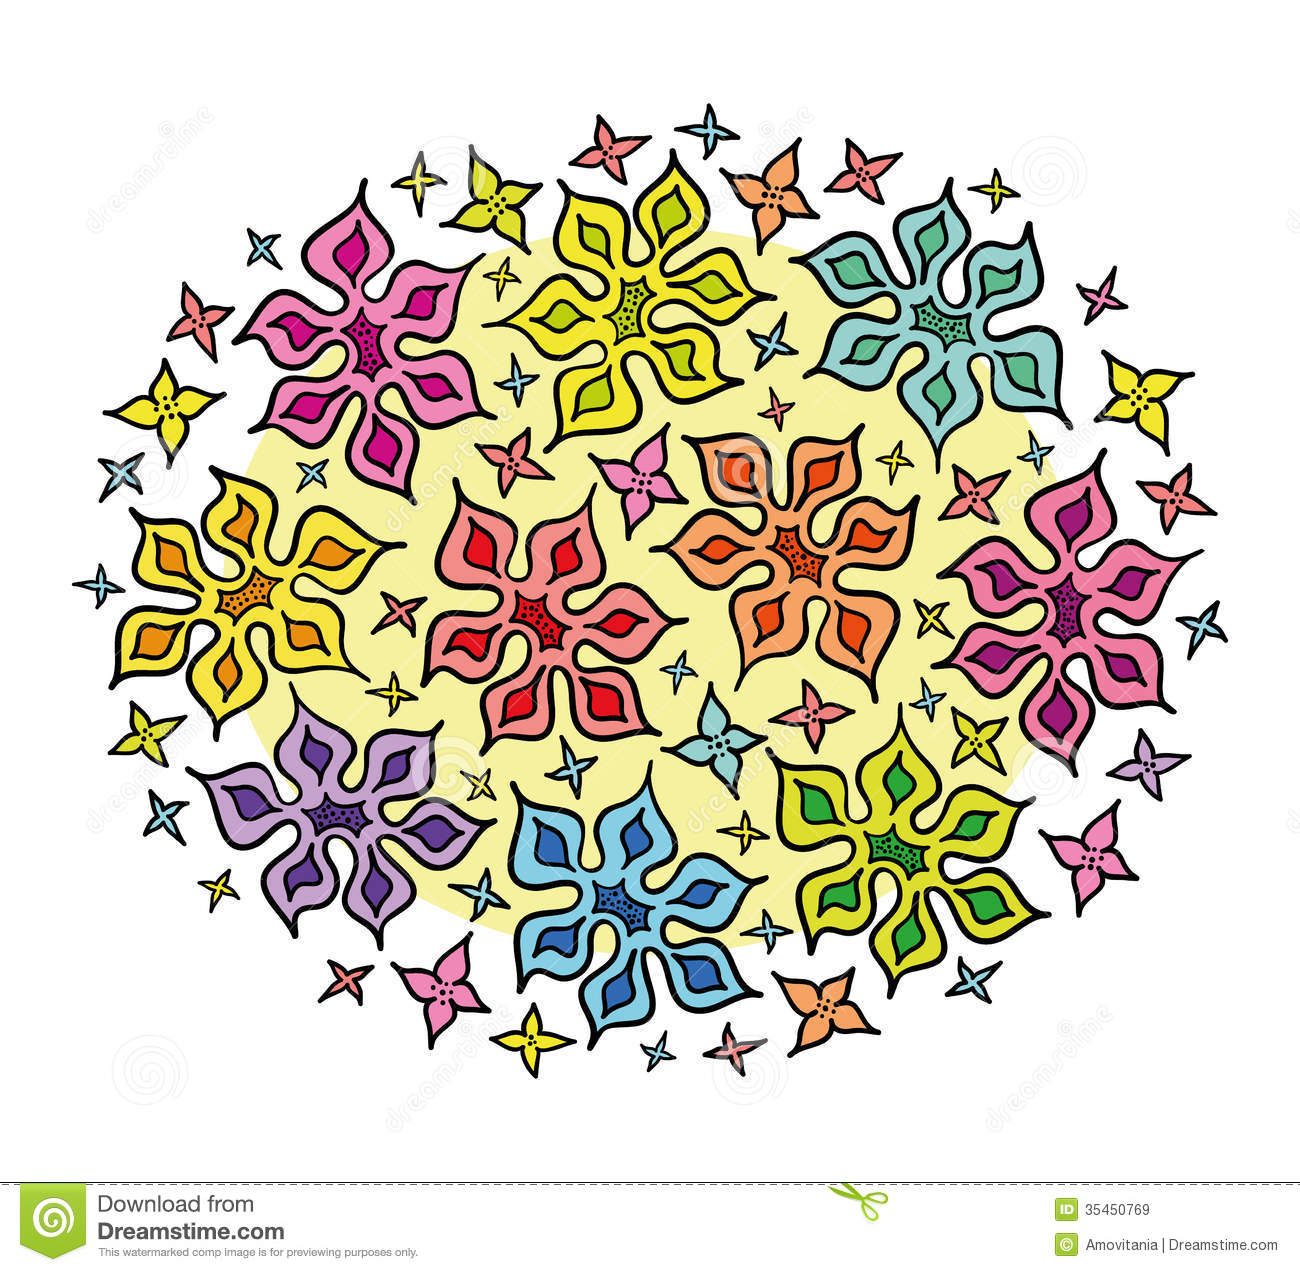 Colorful Bunch Of Cartoon Flowers Royalty Free Stock Images ... image transparent download